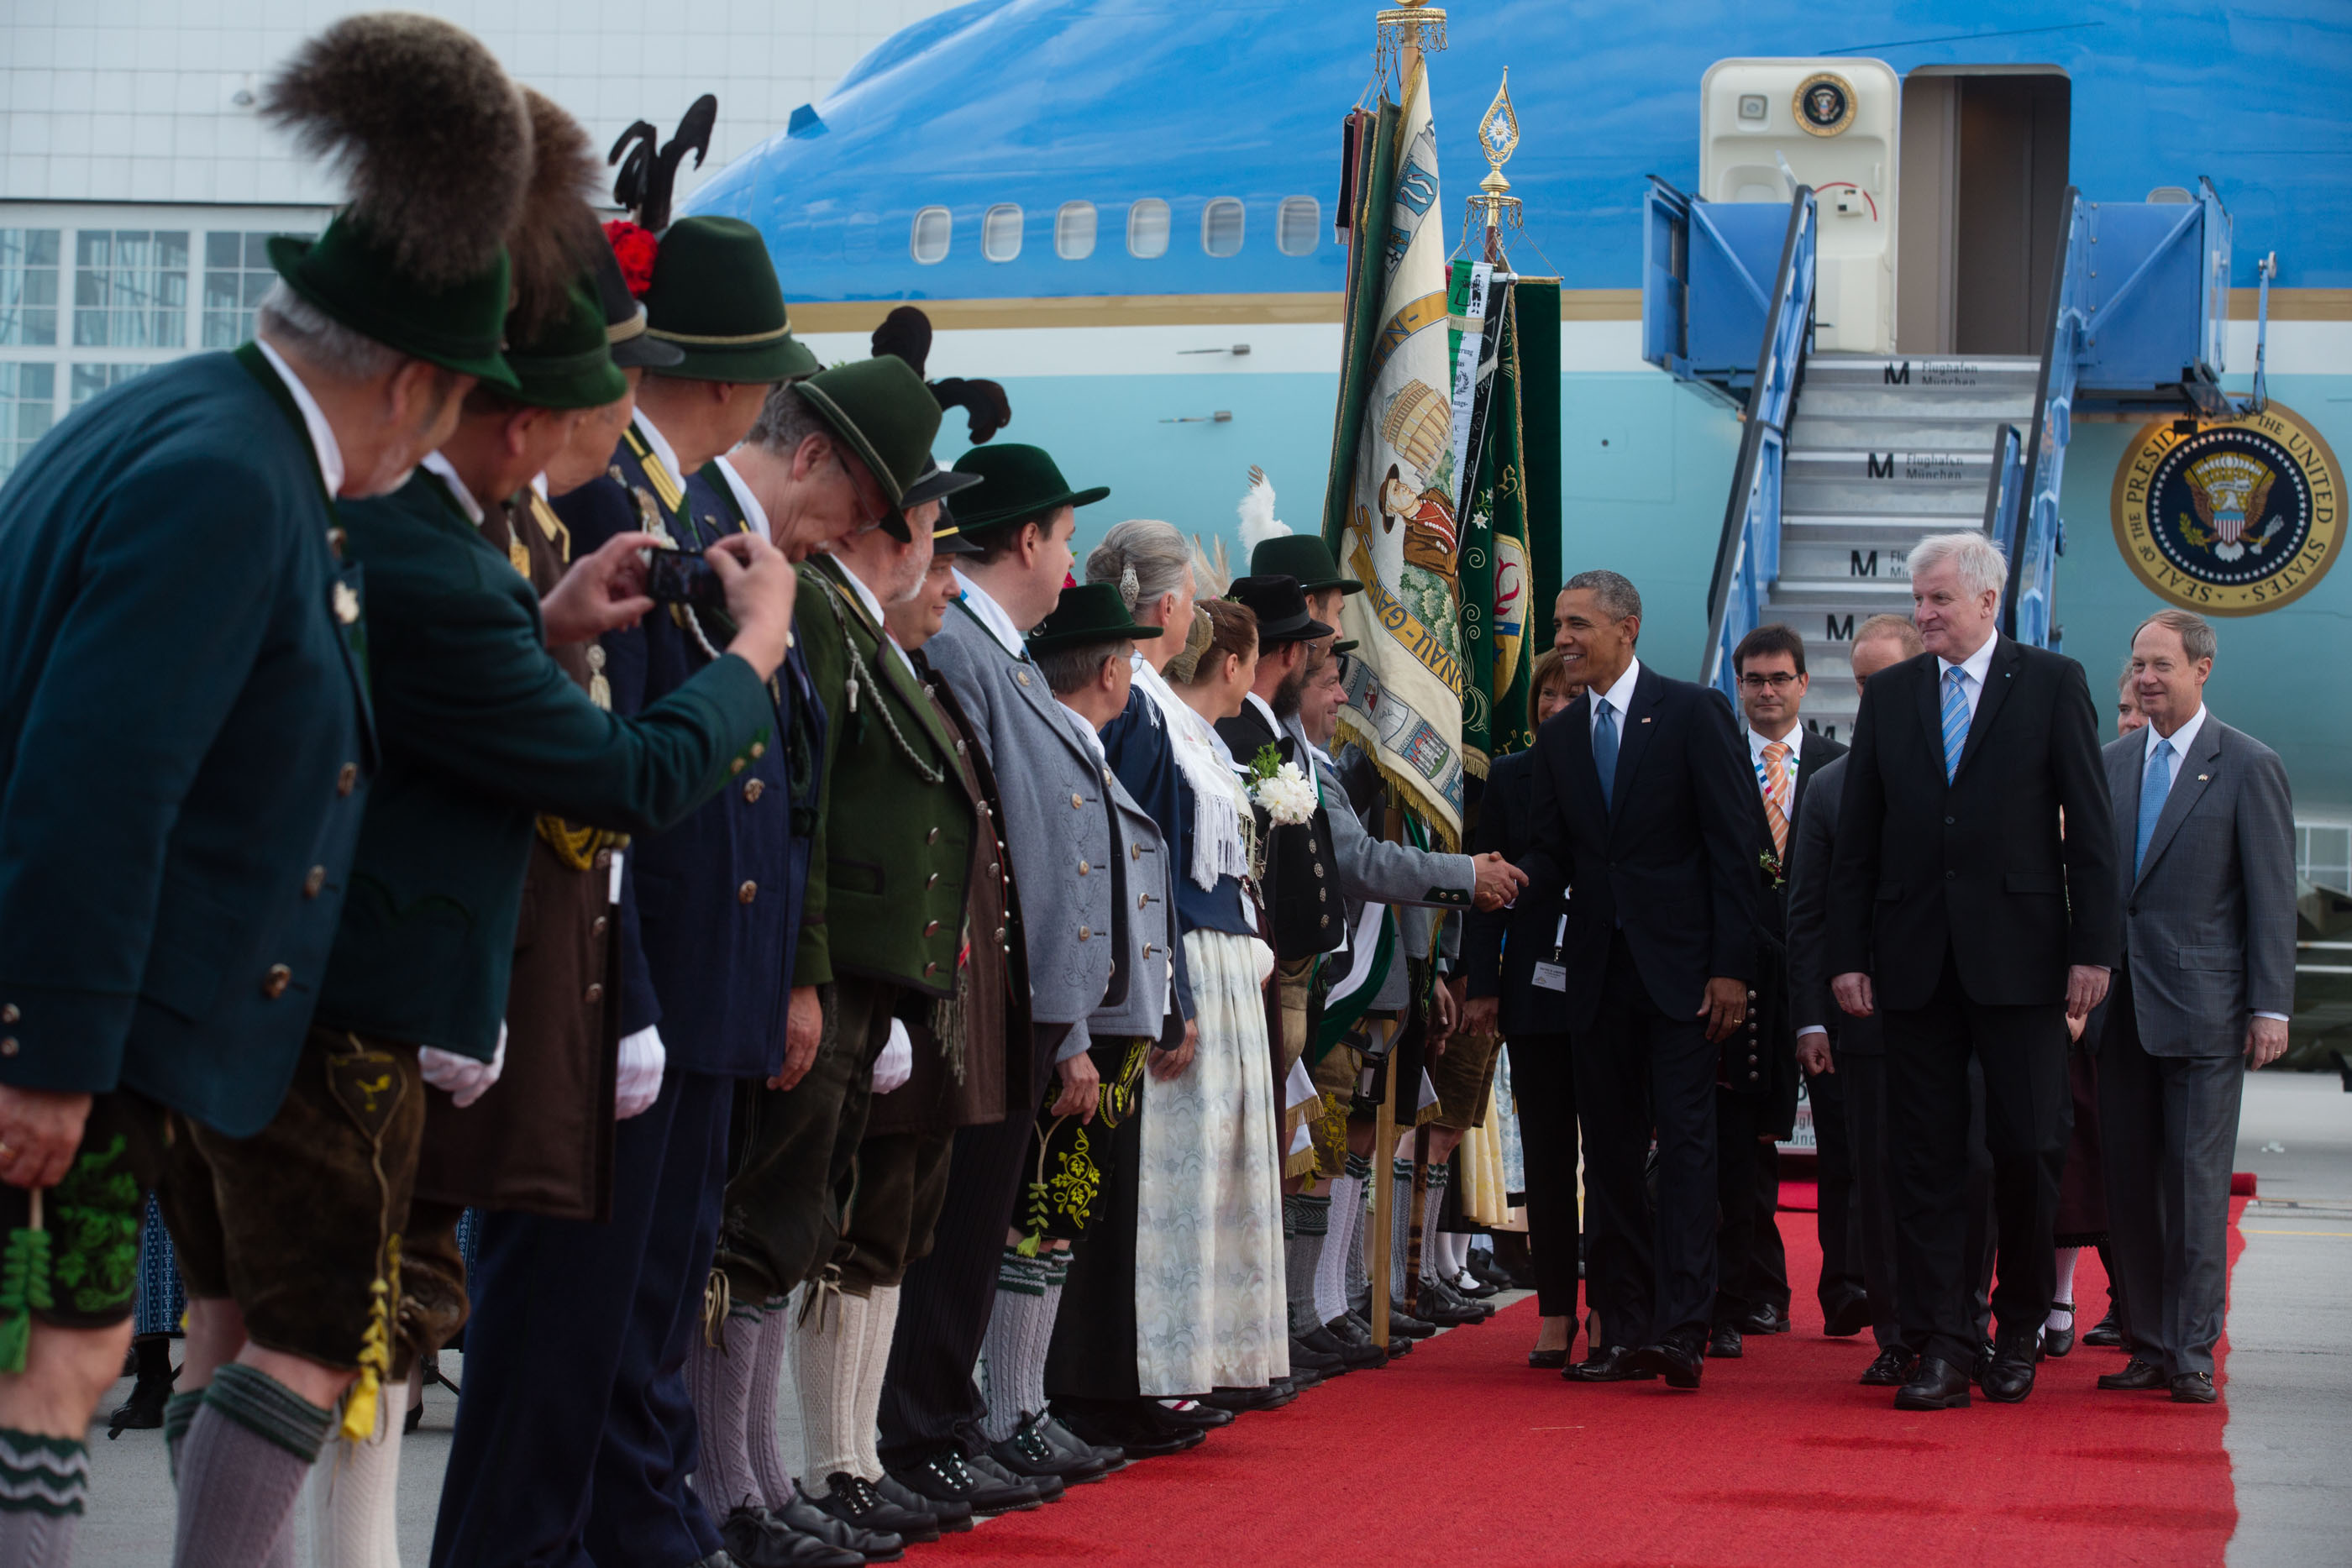 President Obama is greeted by folks in traditional Bavarian dress